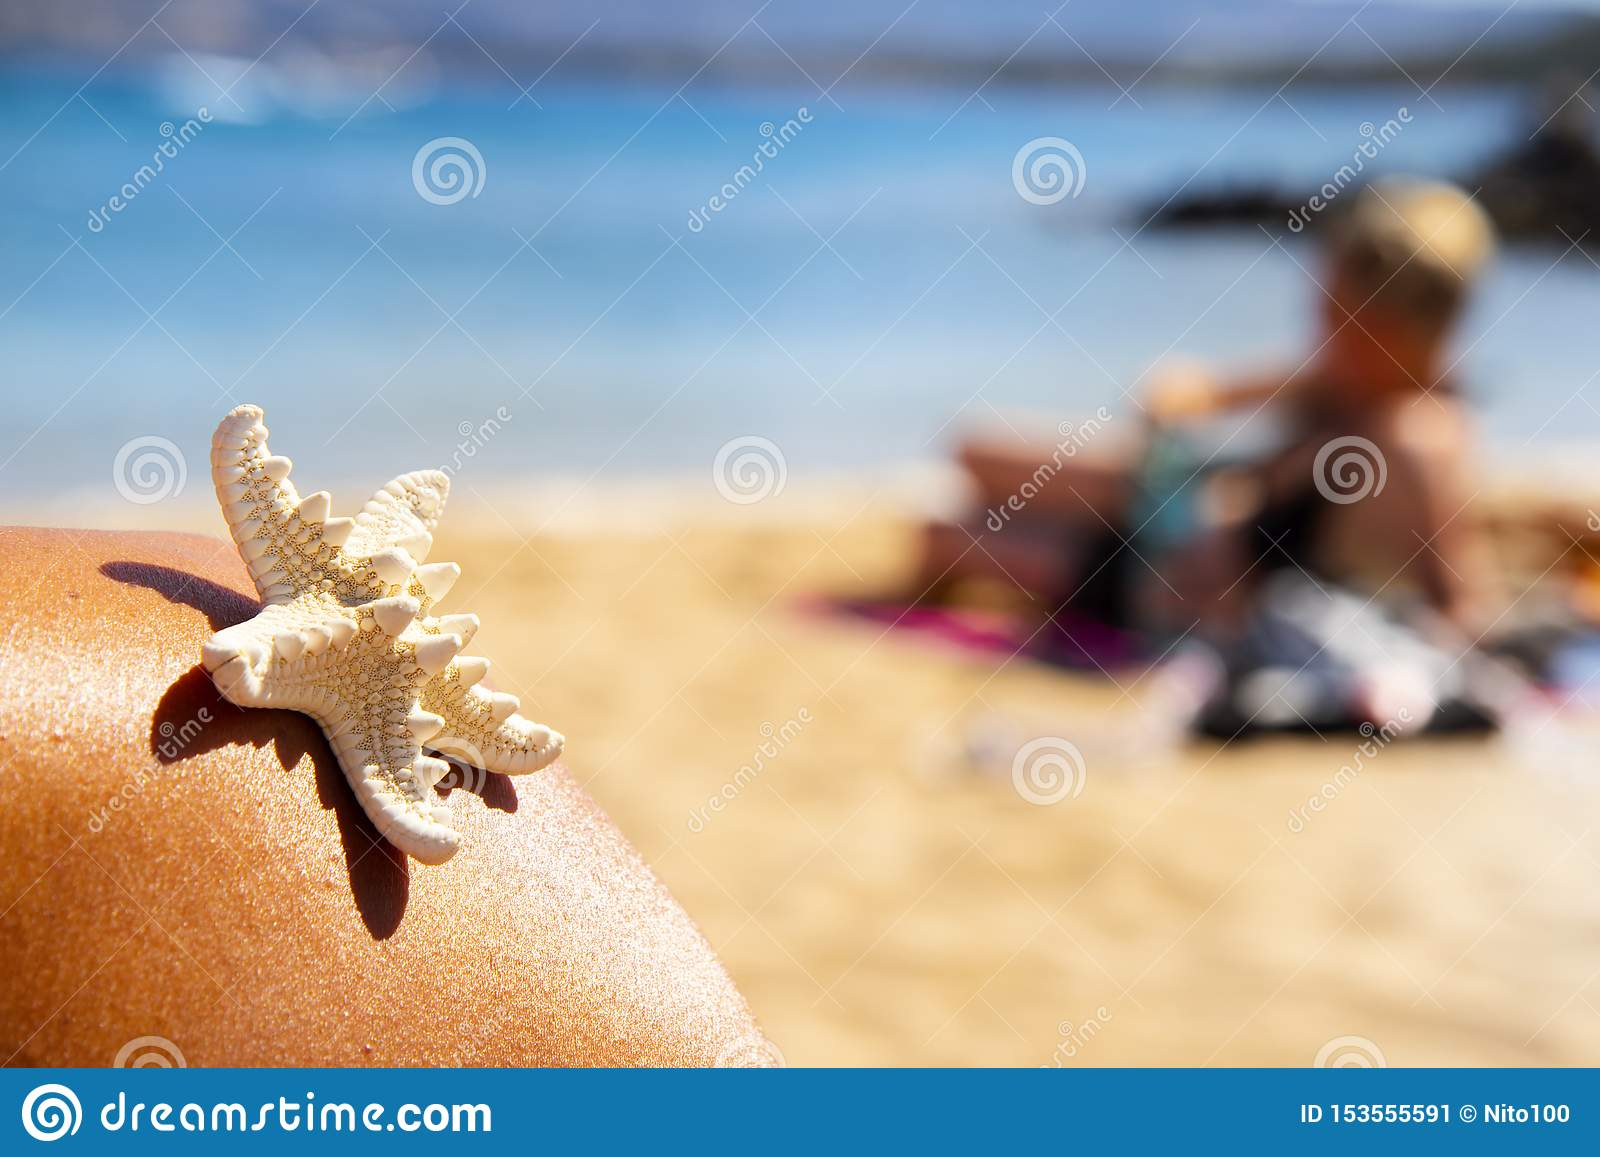 Starfish and person relaxing on the beach